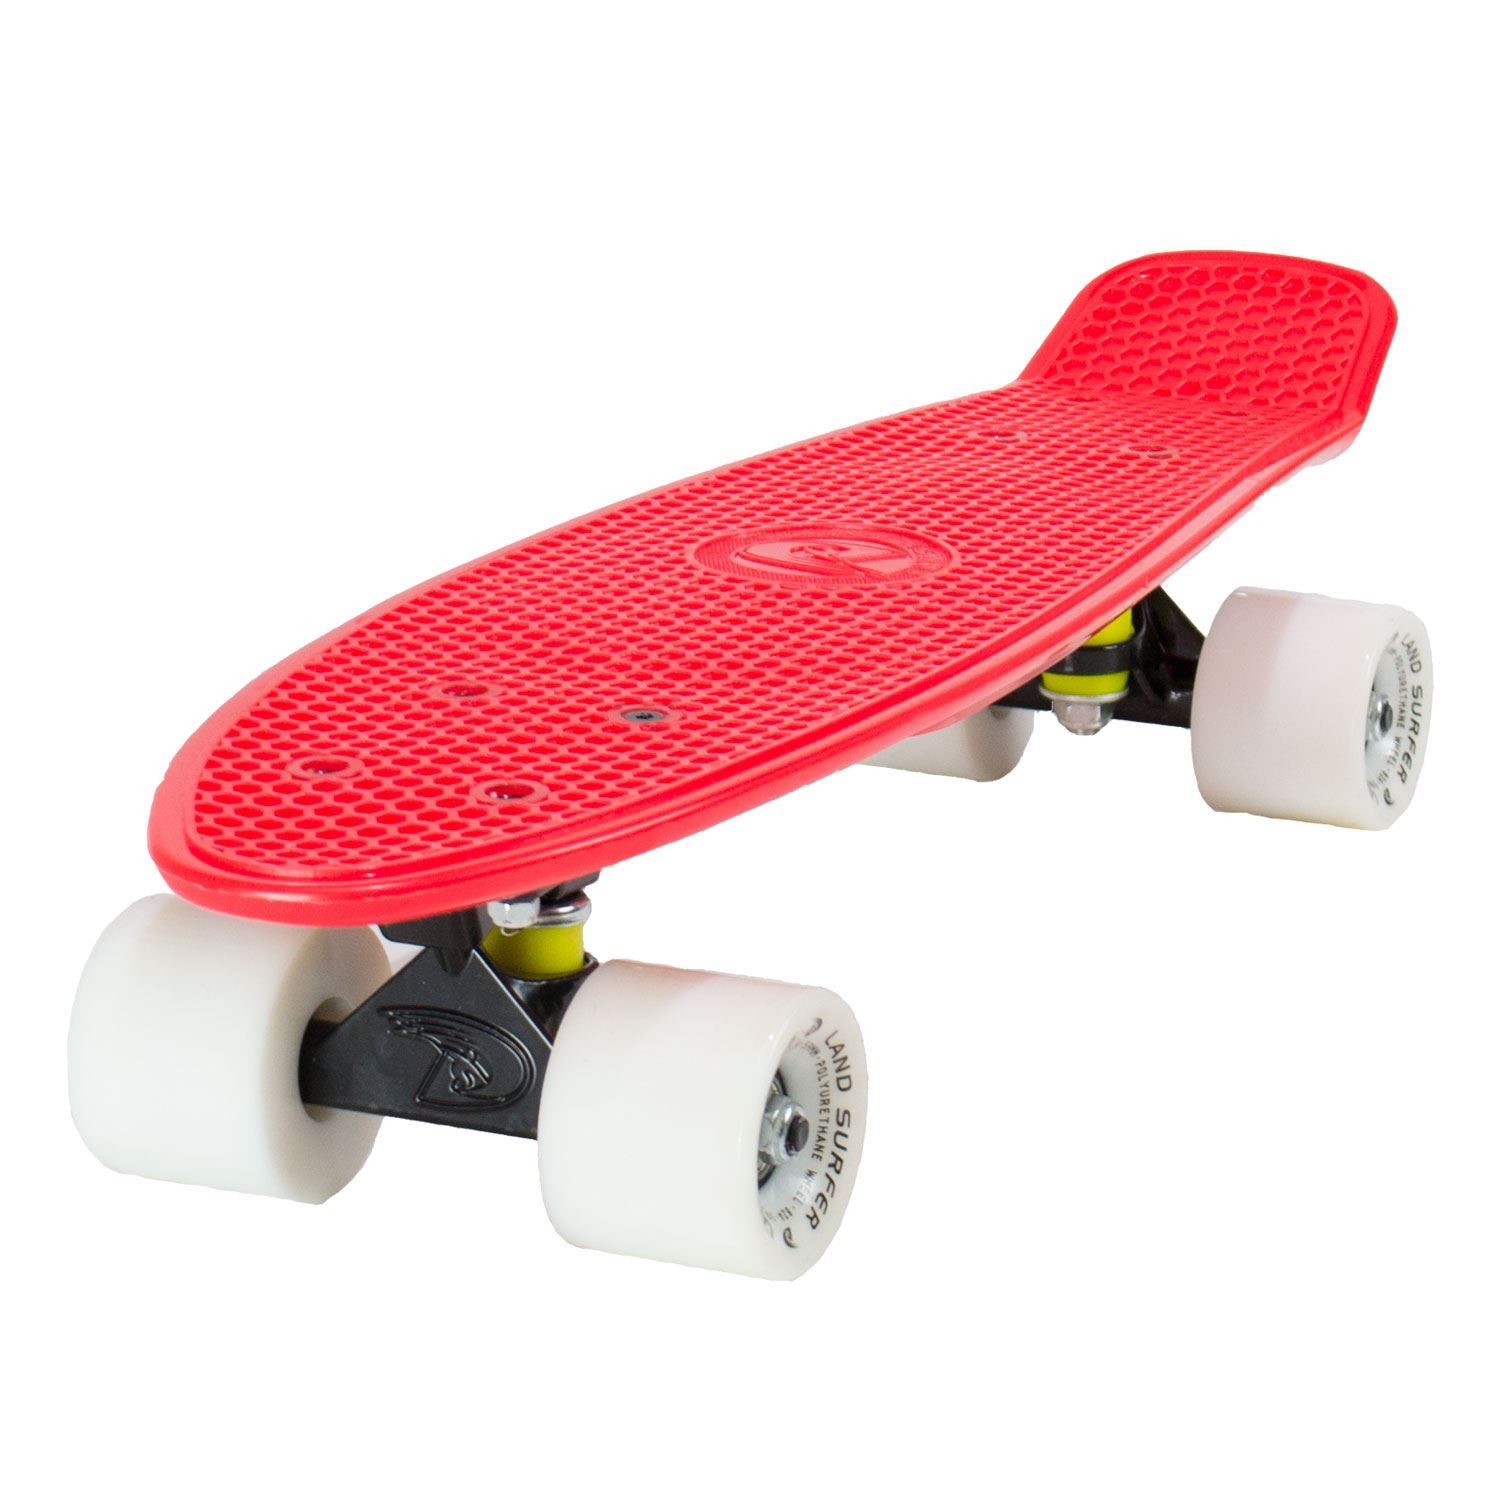 land surfer cruiser skateboard 22 red board black trucks. Black Bedroom Furniture Sets. Home Design Ideas